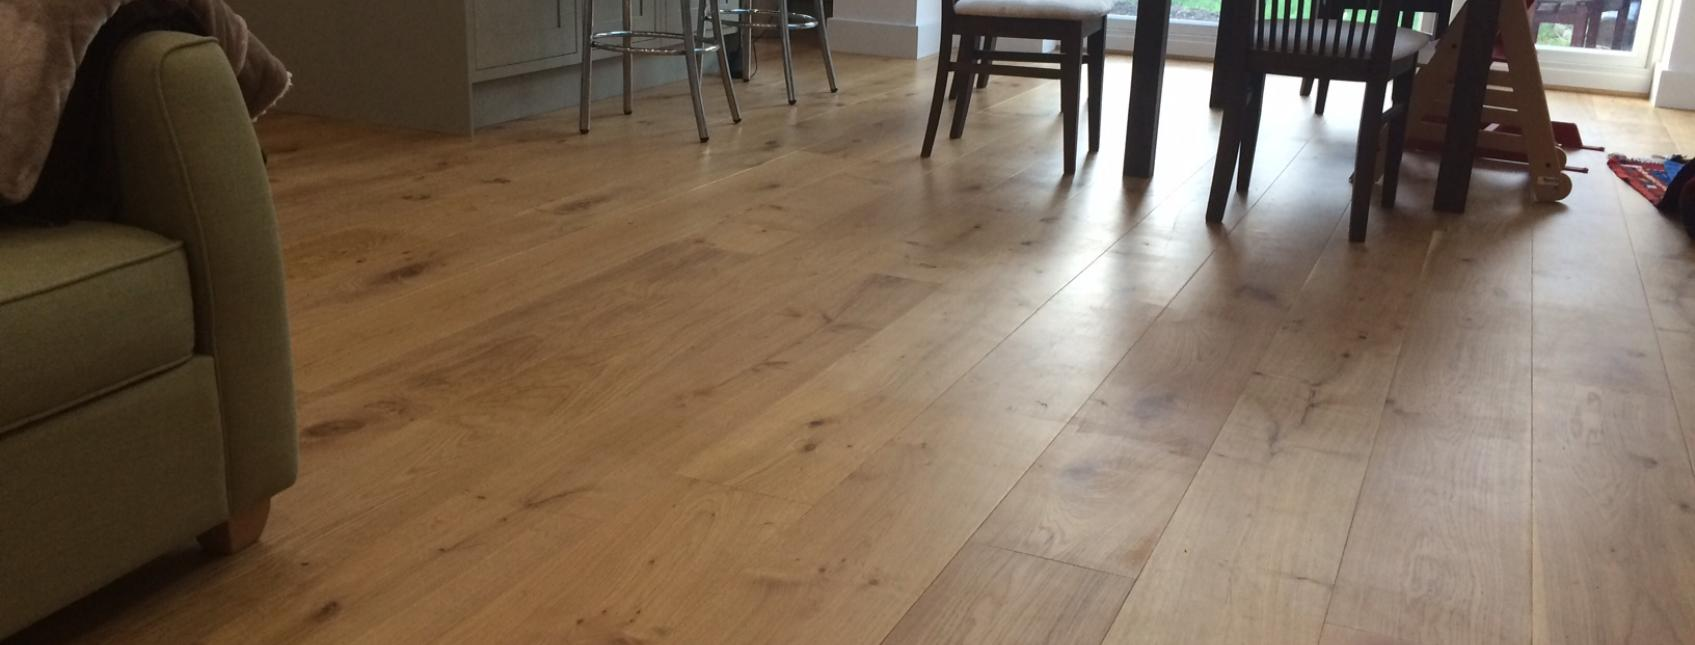 Jfj Wood Flooring Laid In Harrow In North London Testimonial